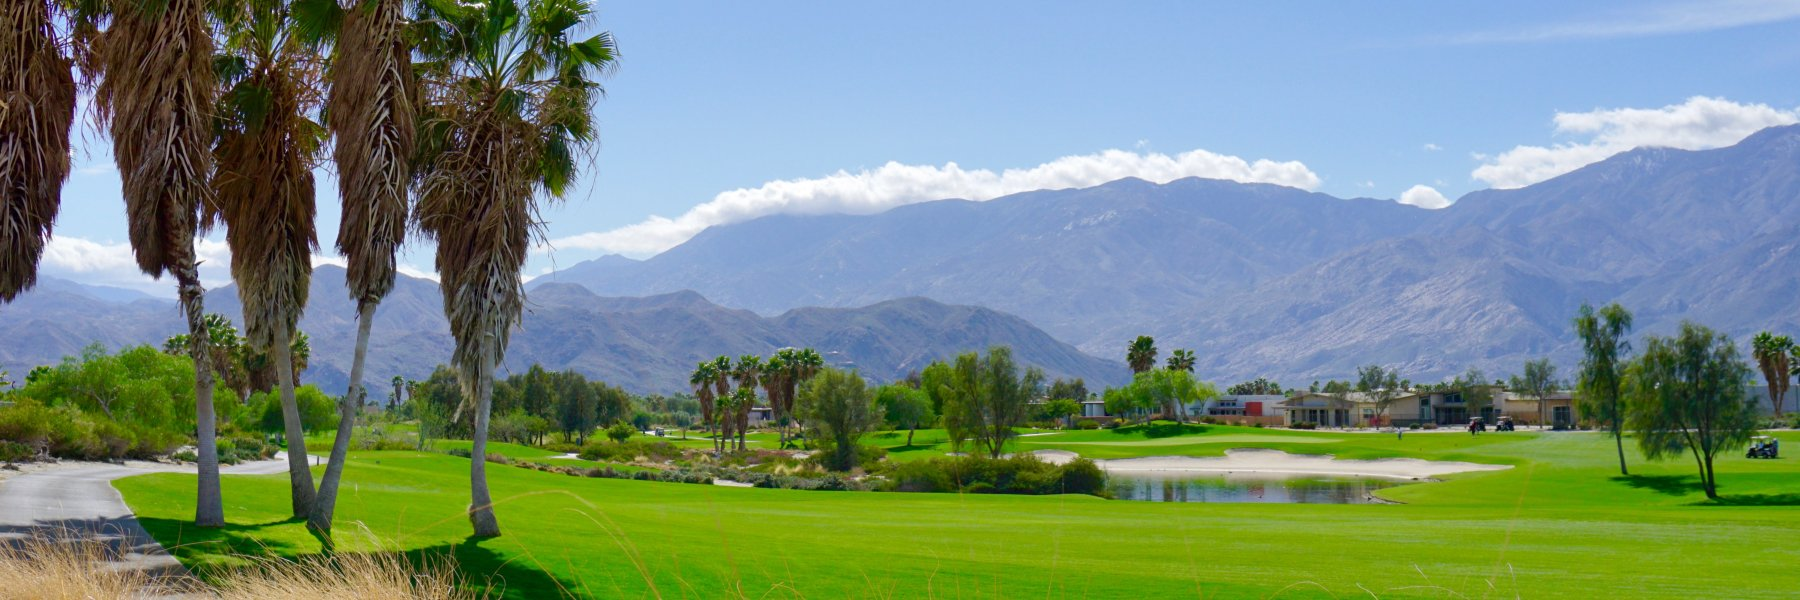 Escena is a community of homes in Palm Springs California